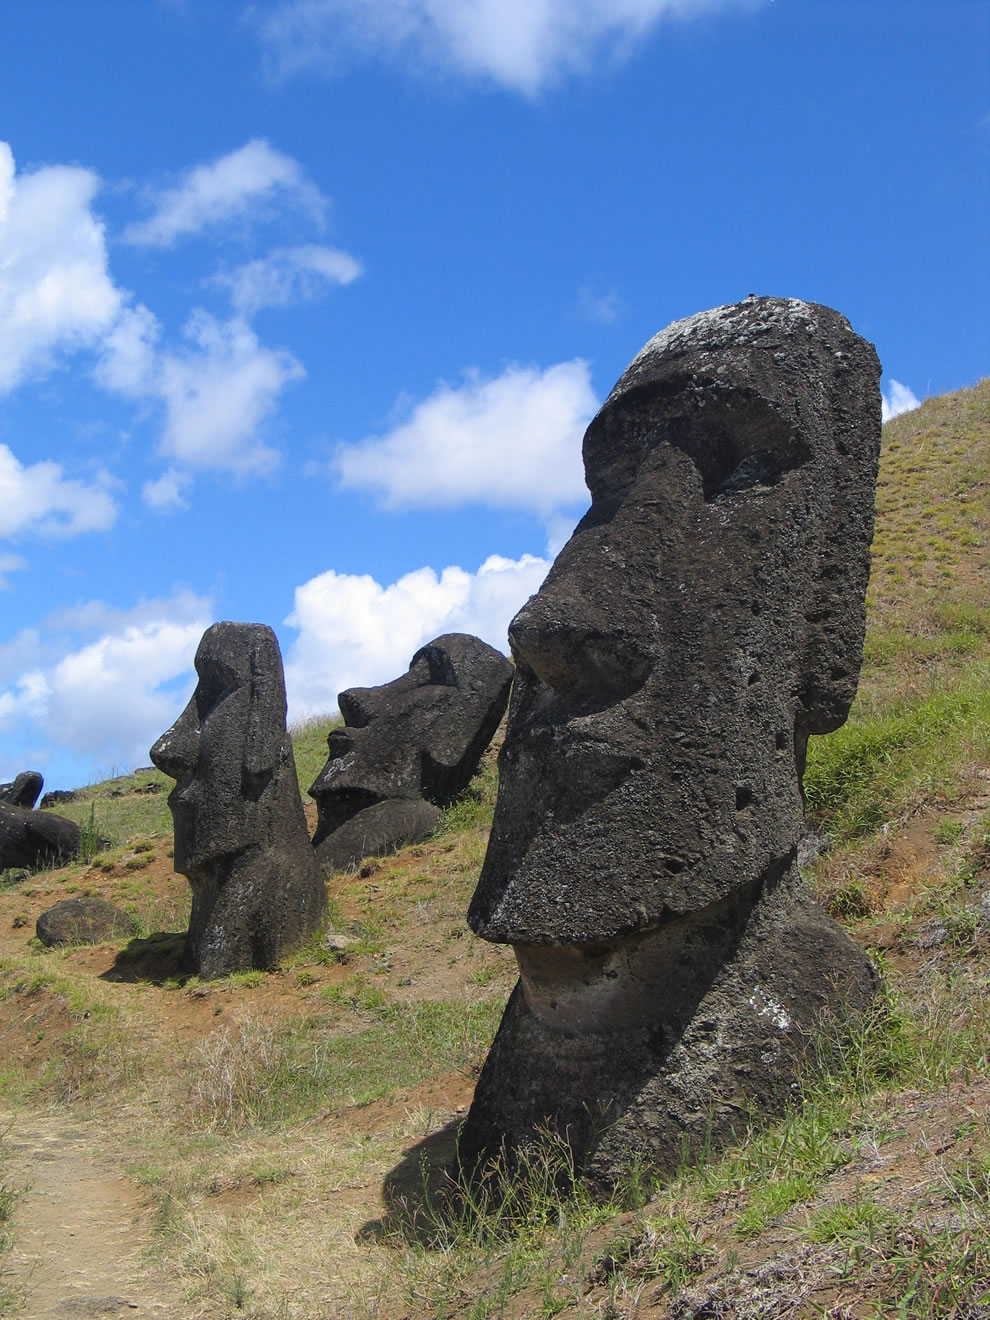 Moai at Rano Raraku - Easter Island